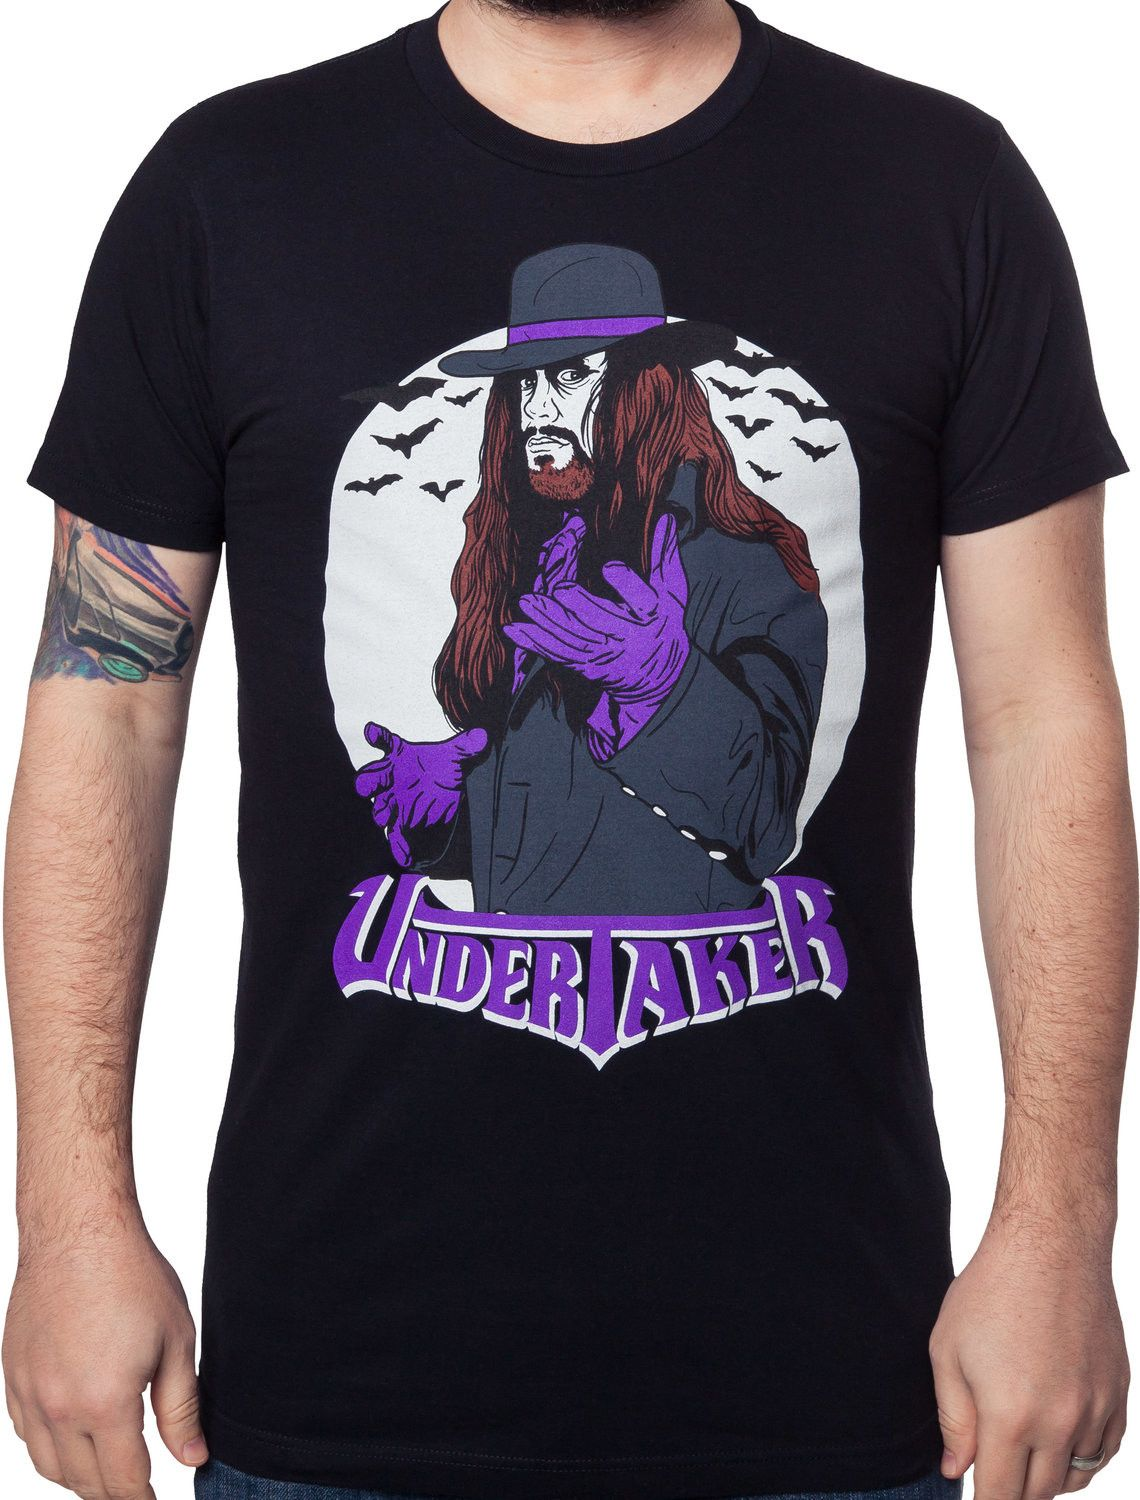 33be5fdfd Undertaker Shirt: 80s Wrestling Shirts | New Mens T-Shirts From ...